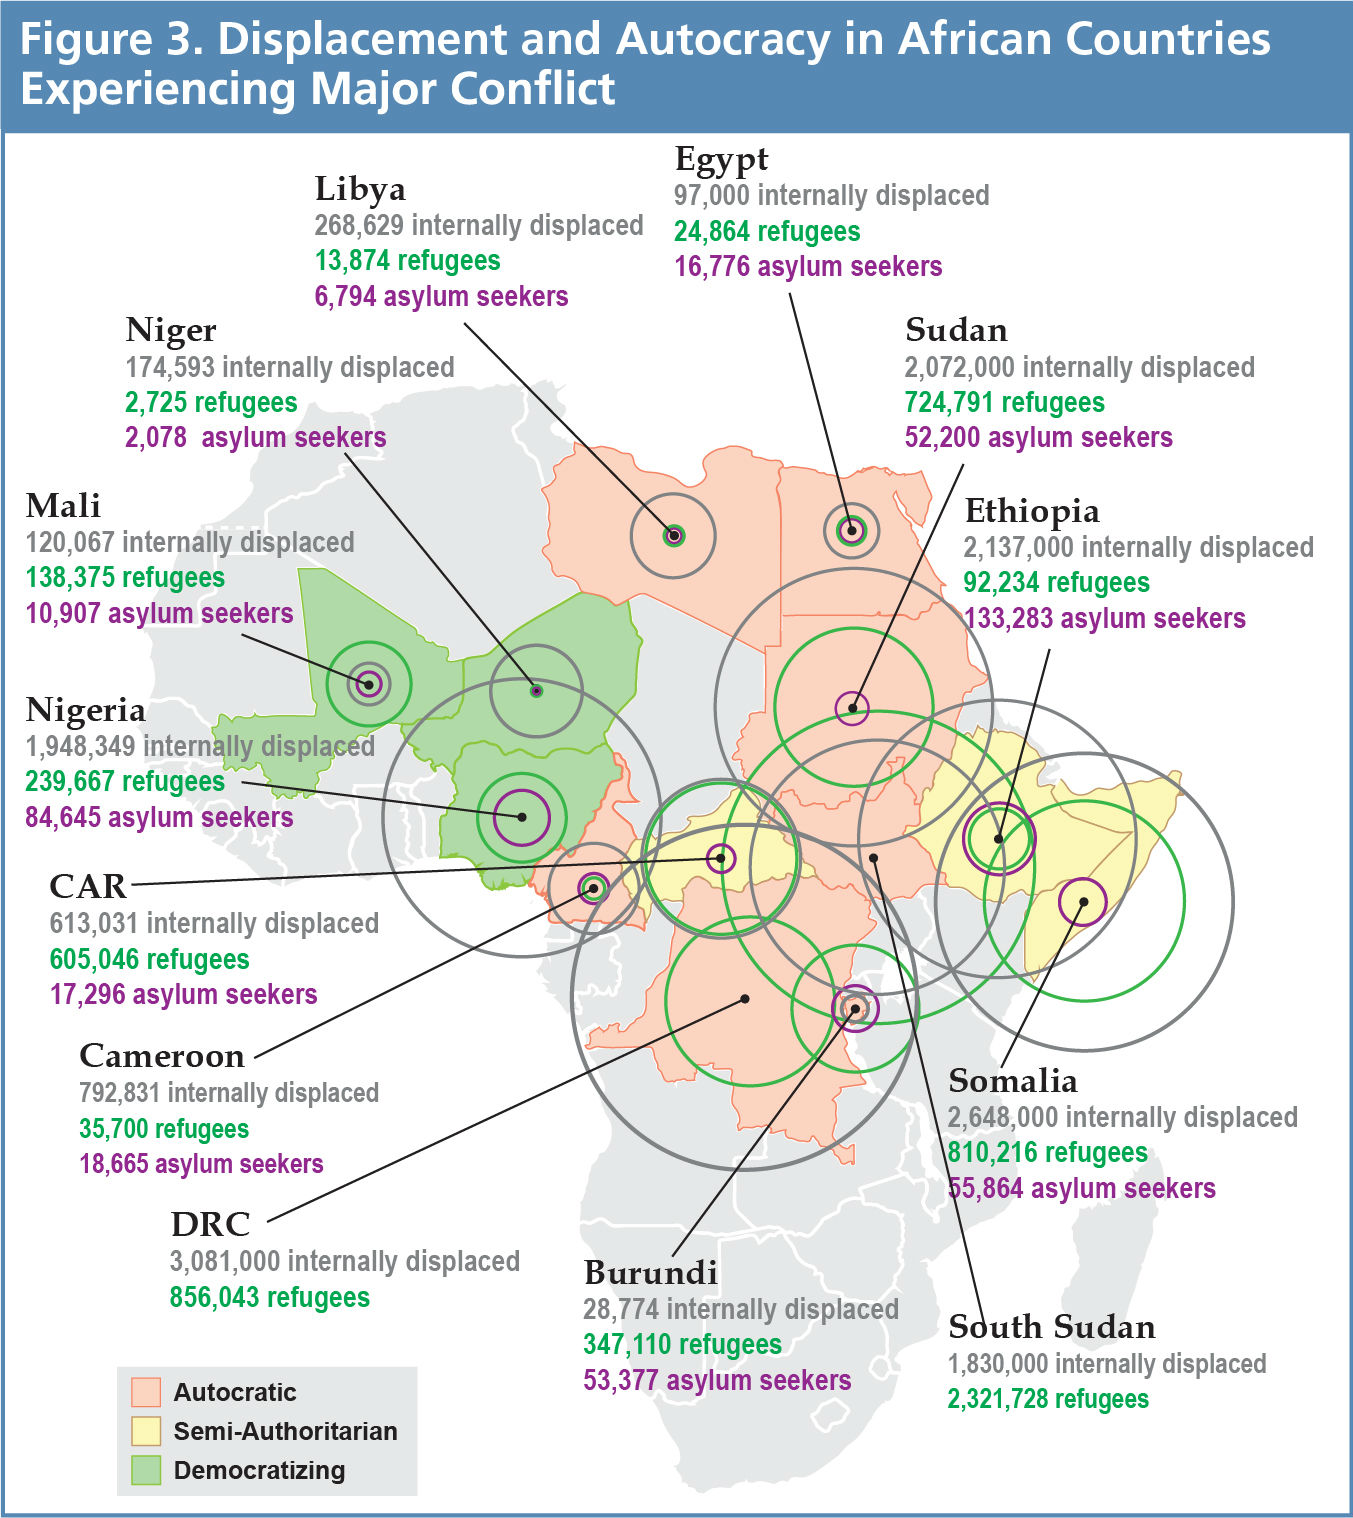 Shifting Borders Figure 3 - Displacement and Autocracy in African Countries Experiencing Major Conflict